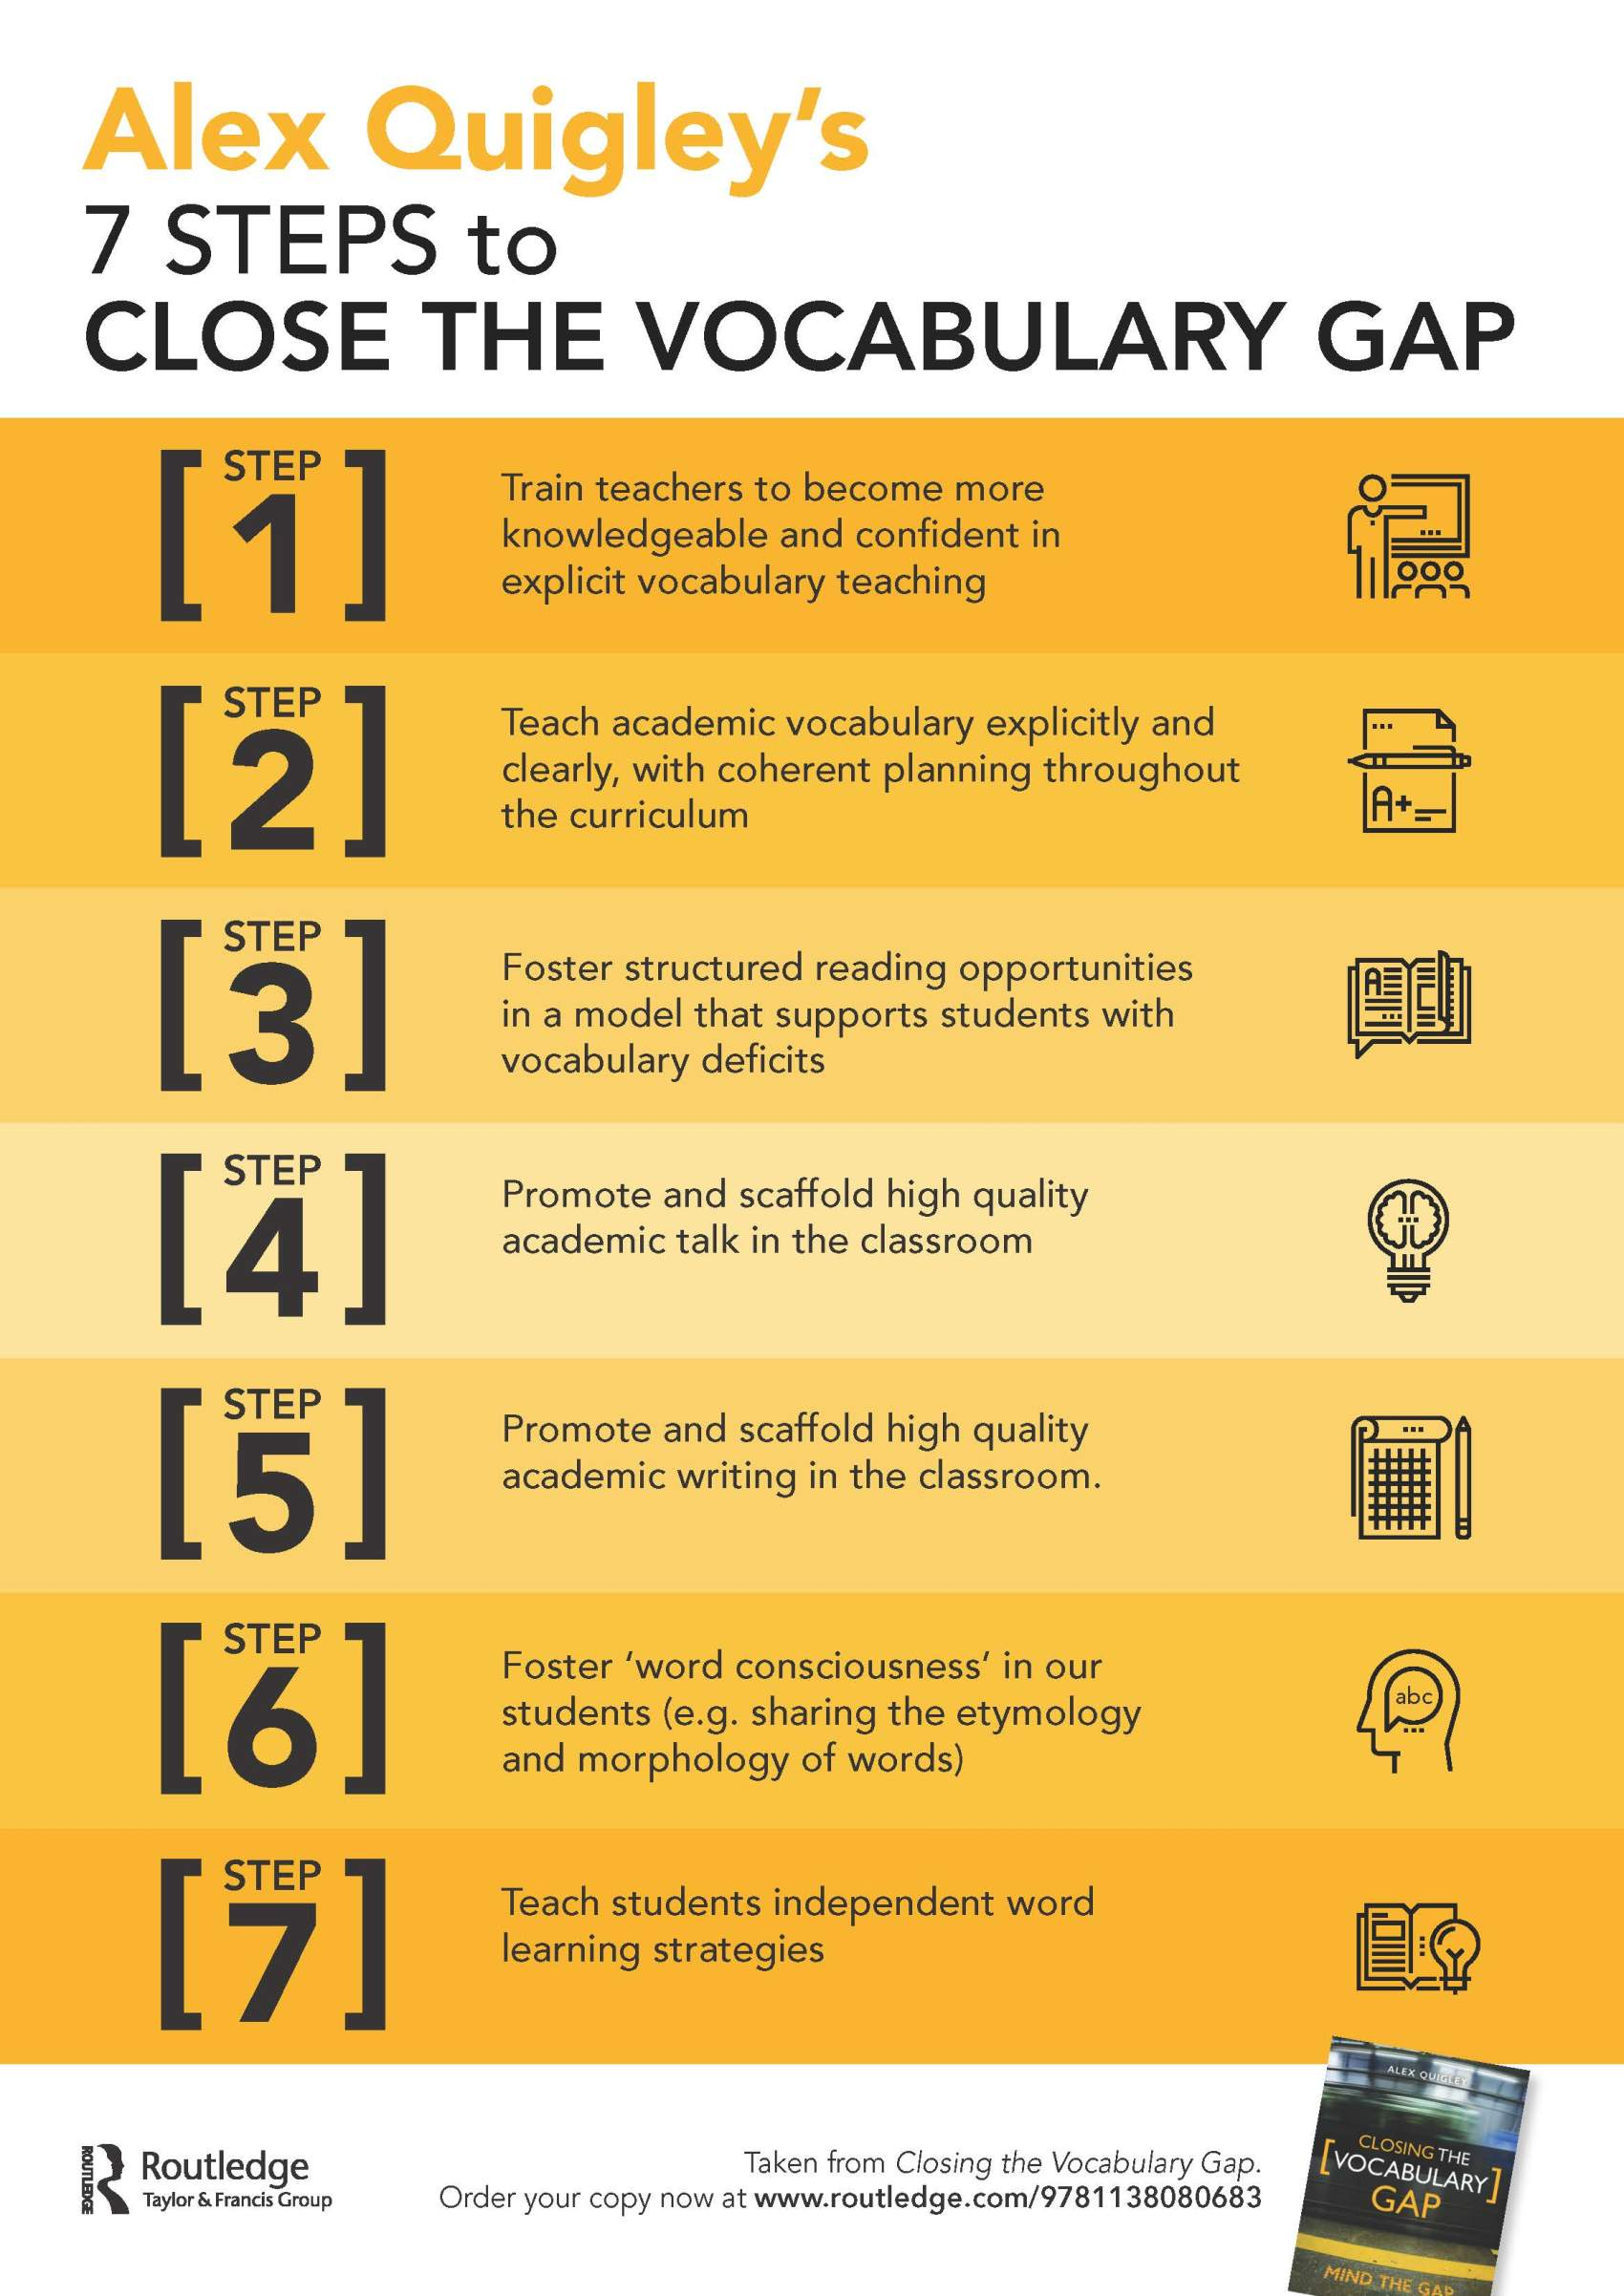 7 Steps to Close the Vocabulary Gap